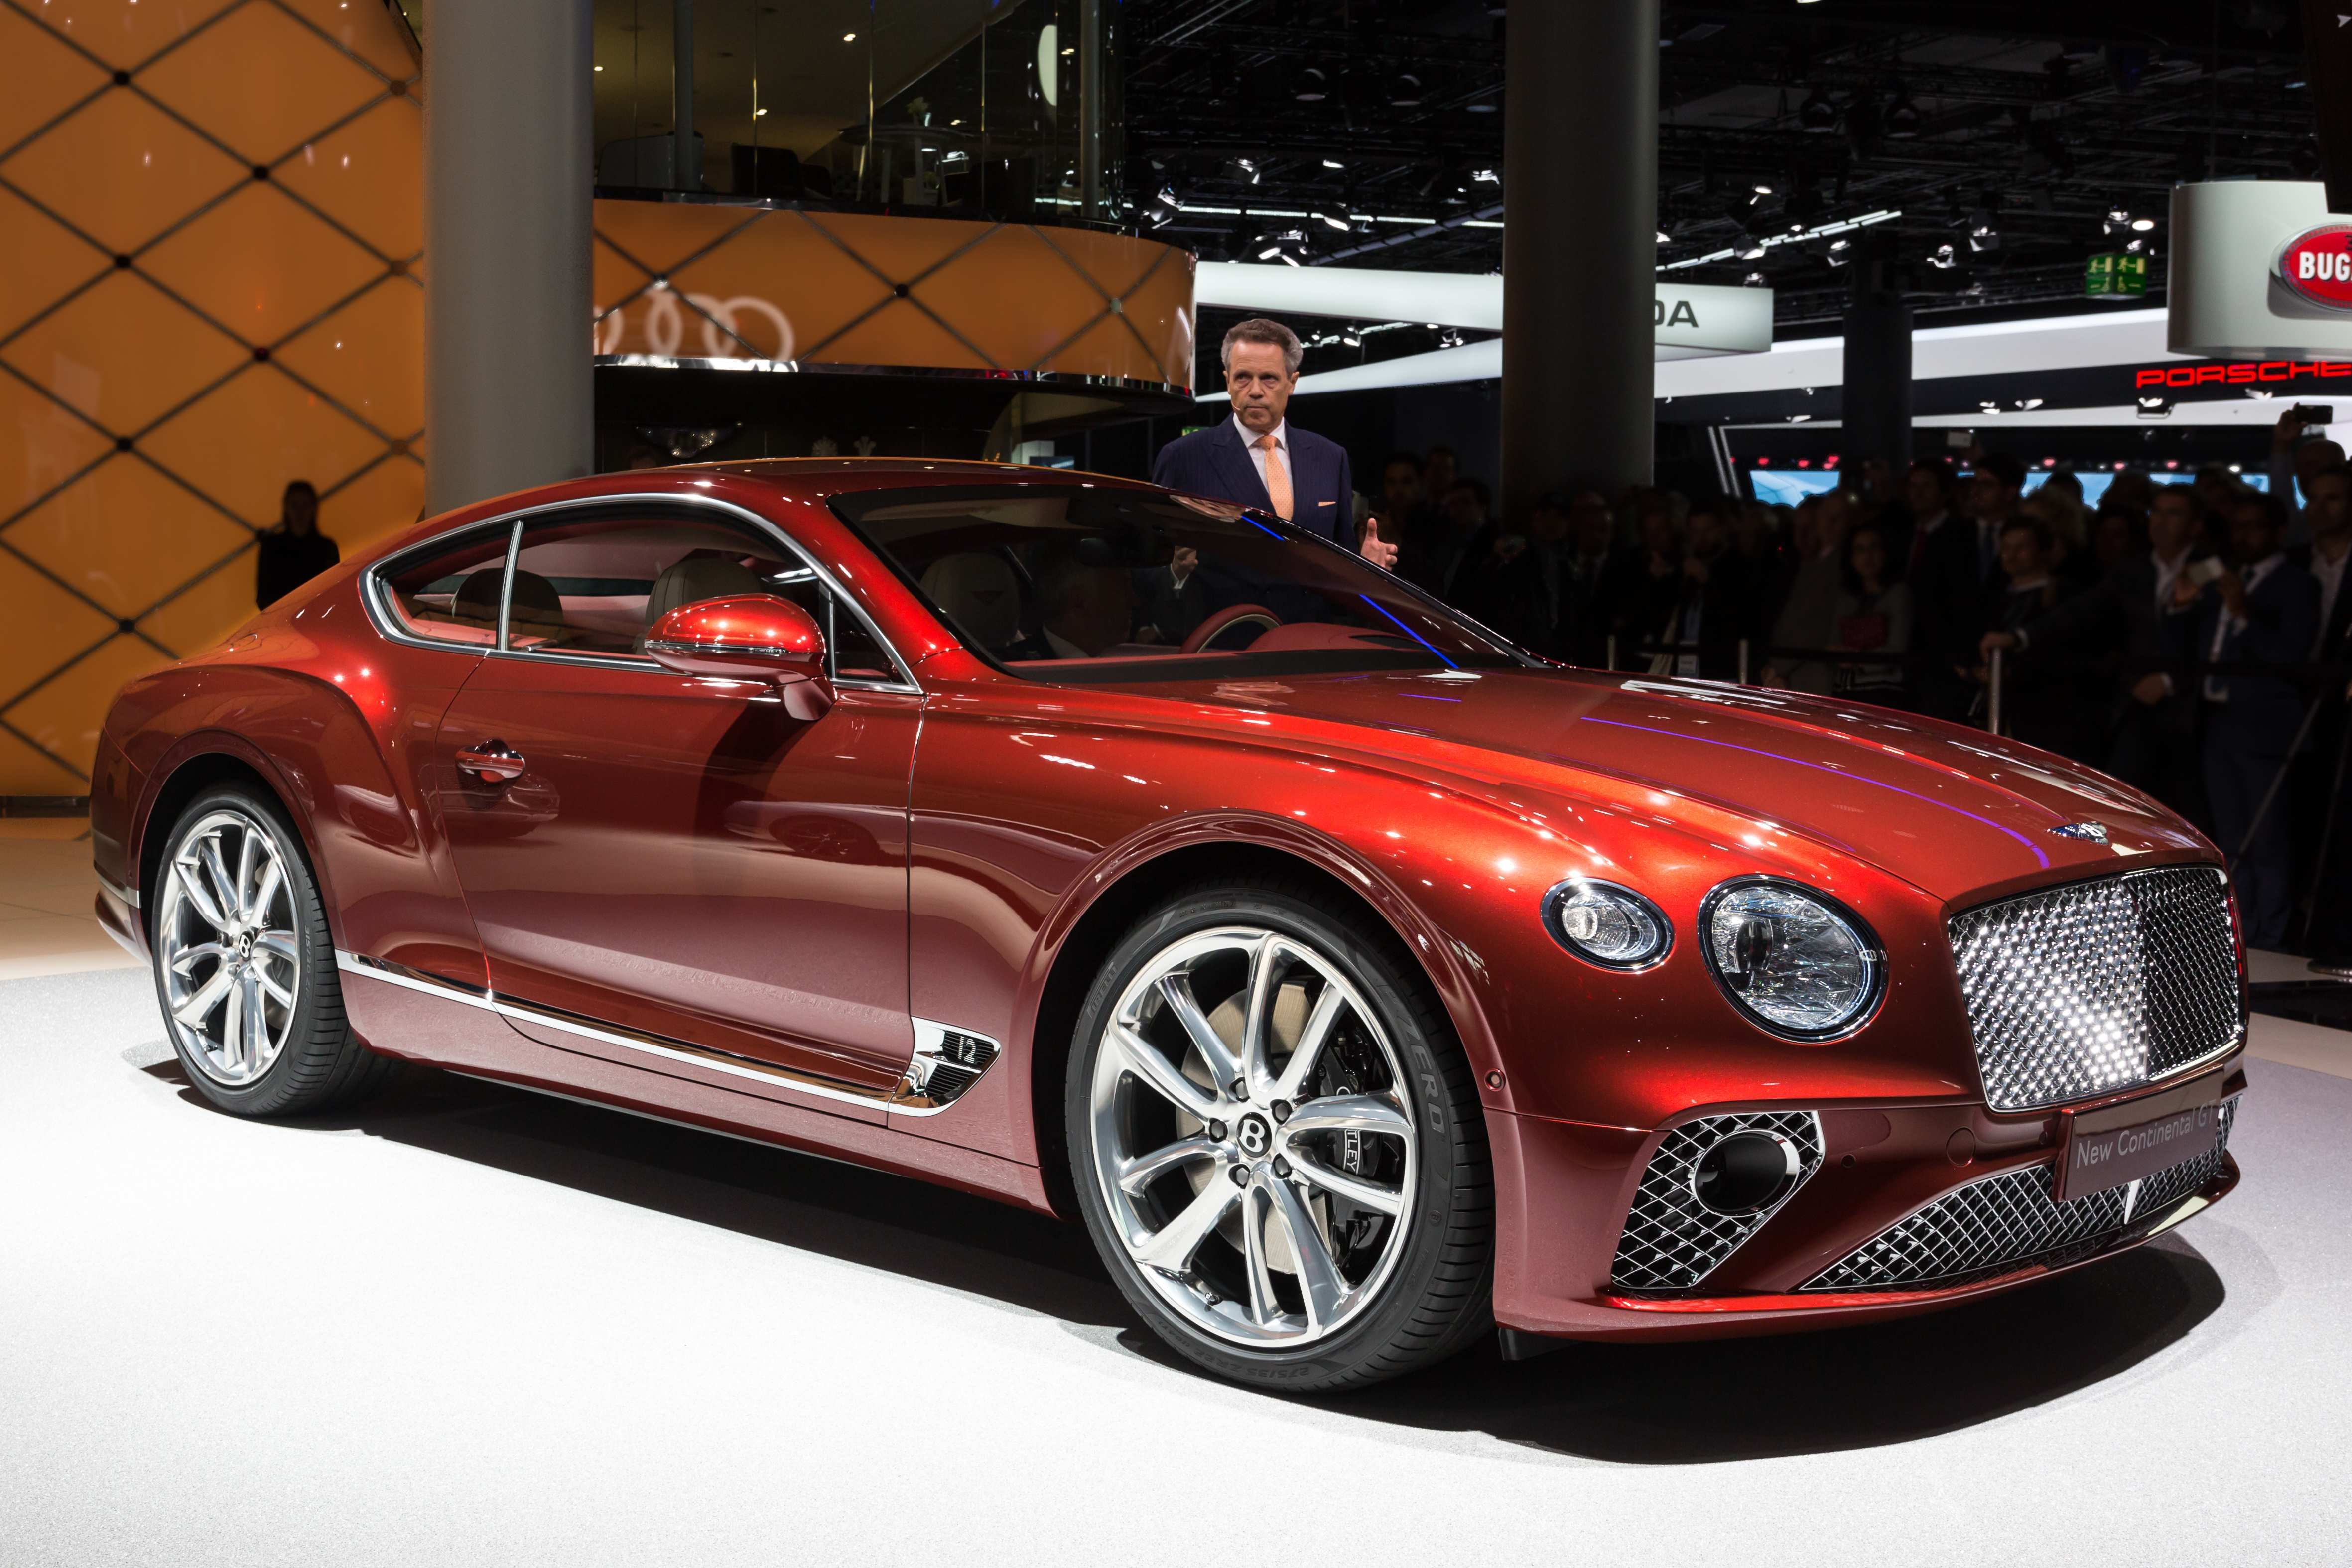 19 Concept of 2019 Bentley Continental Gt Weight Interior for 2019 Bentley Continental Gt Weight